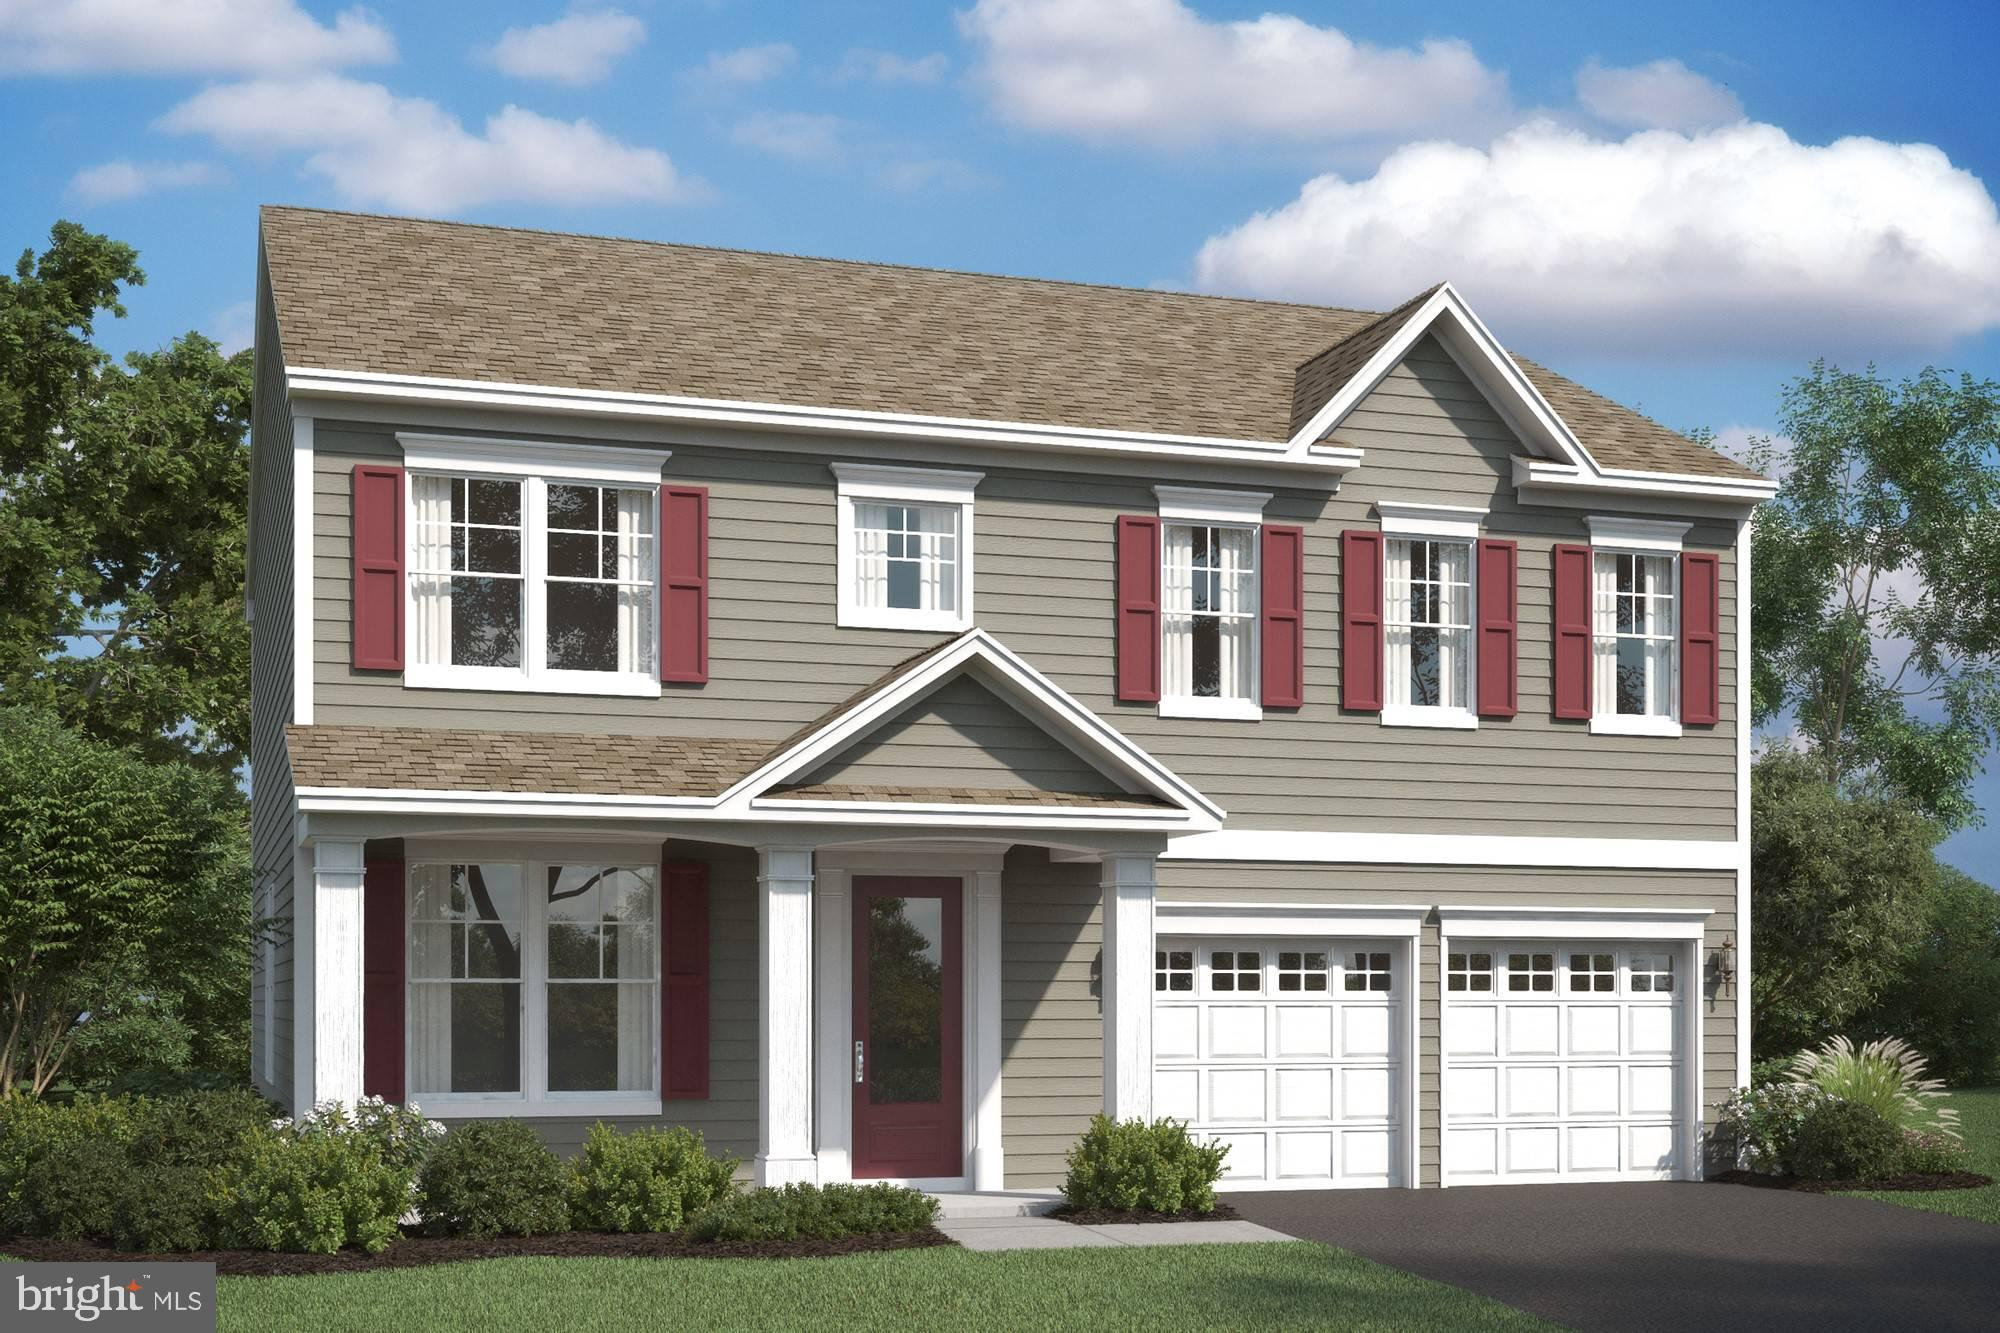 GRAND OPENING! Come be one of the first to purchase a Brand New Single Family Home in Millersville's